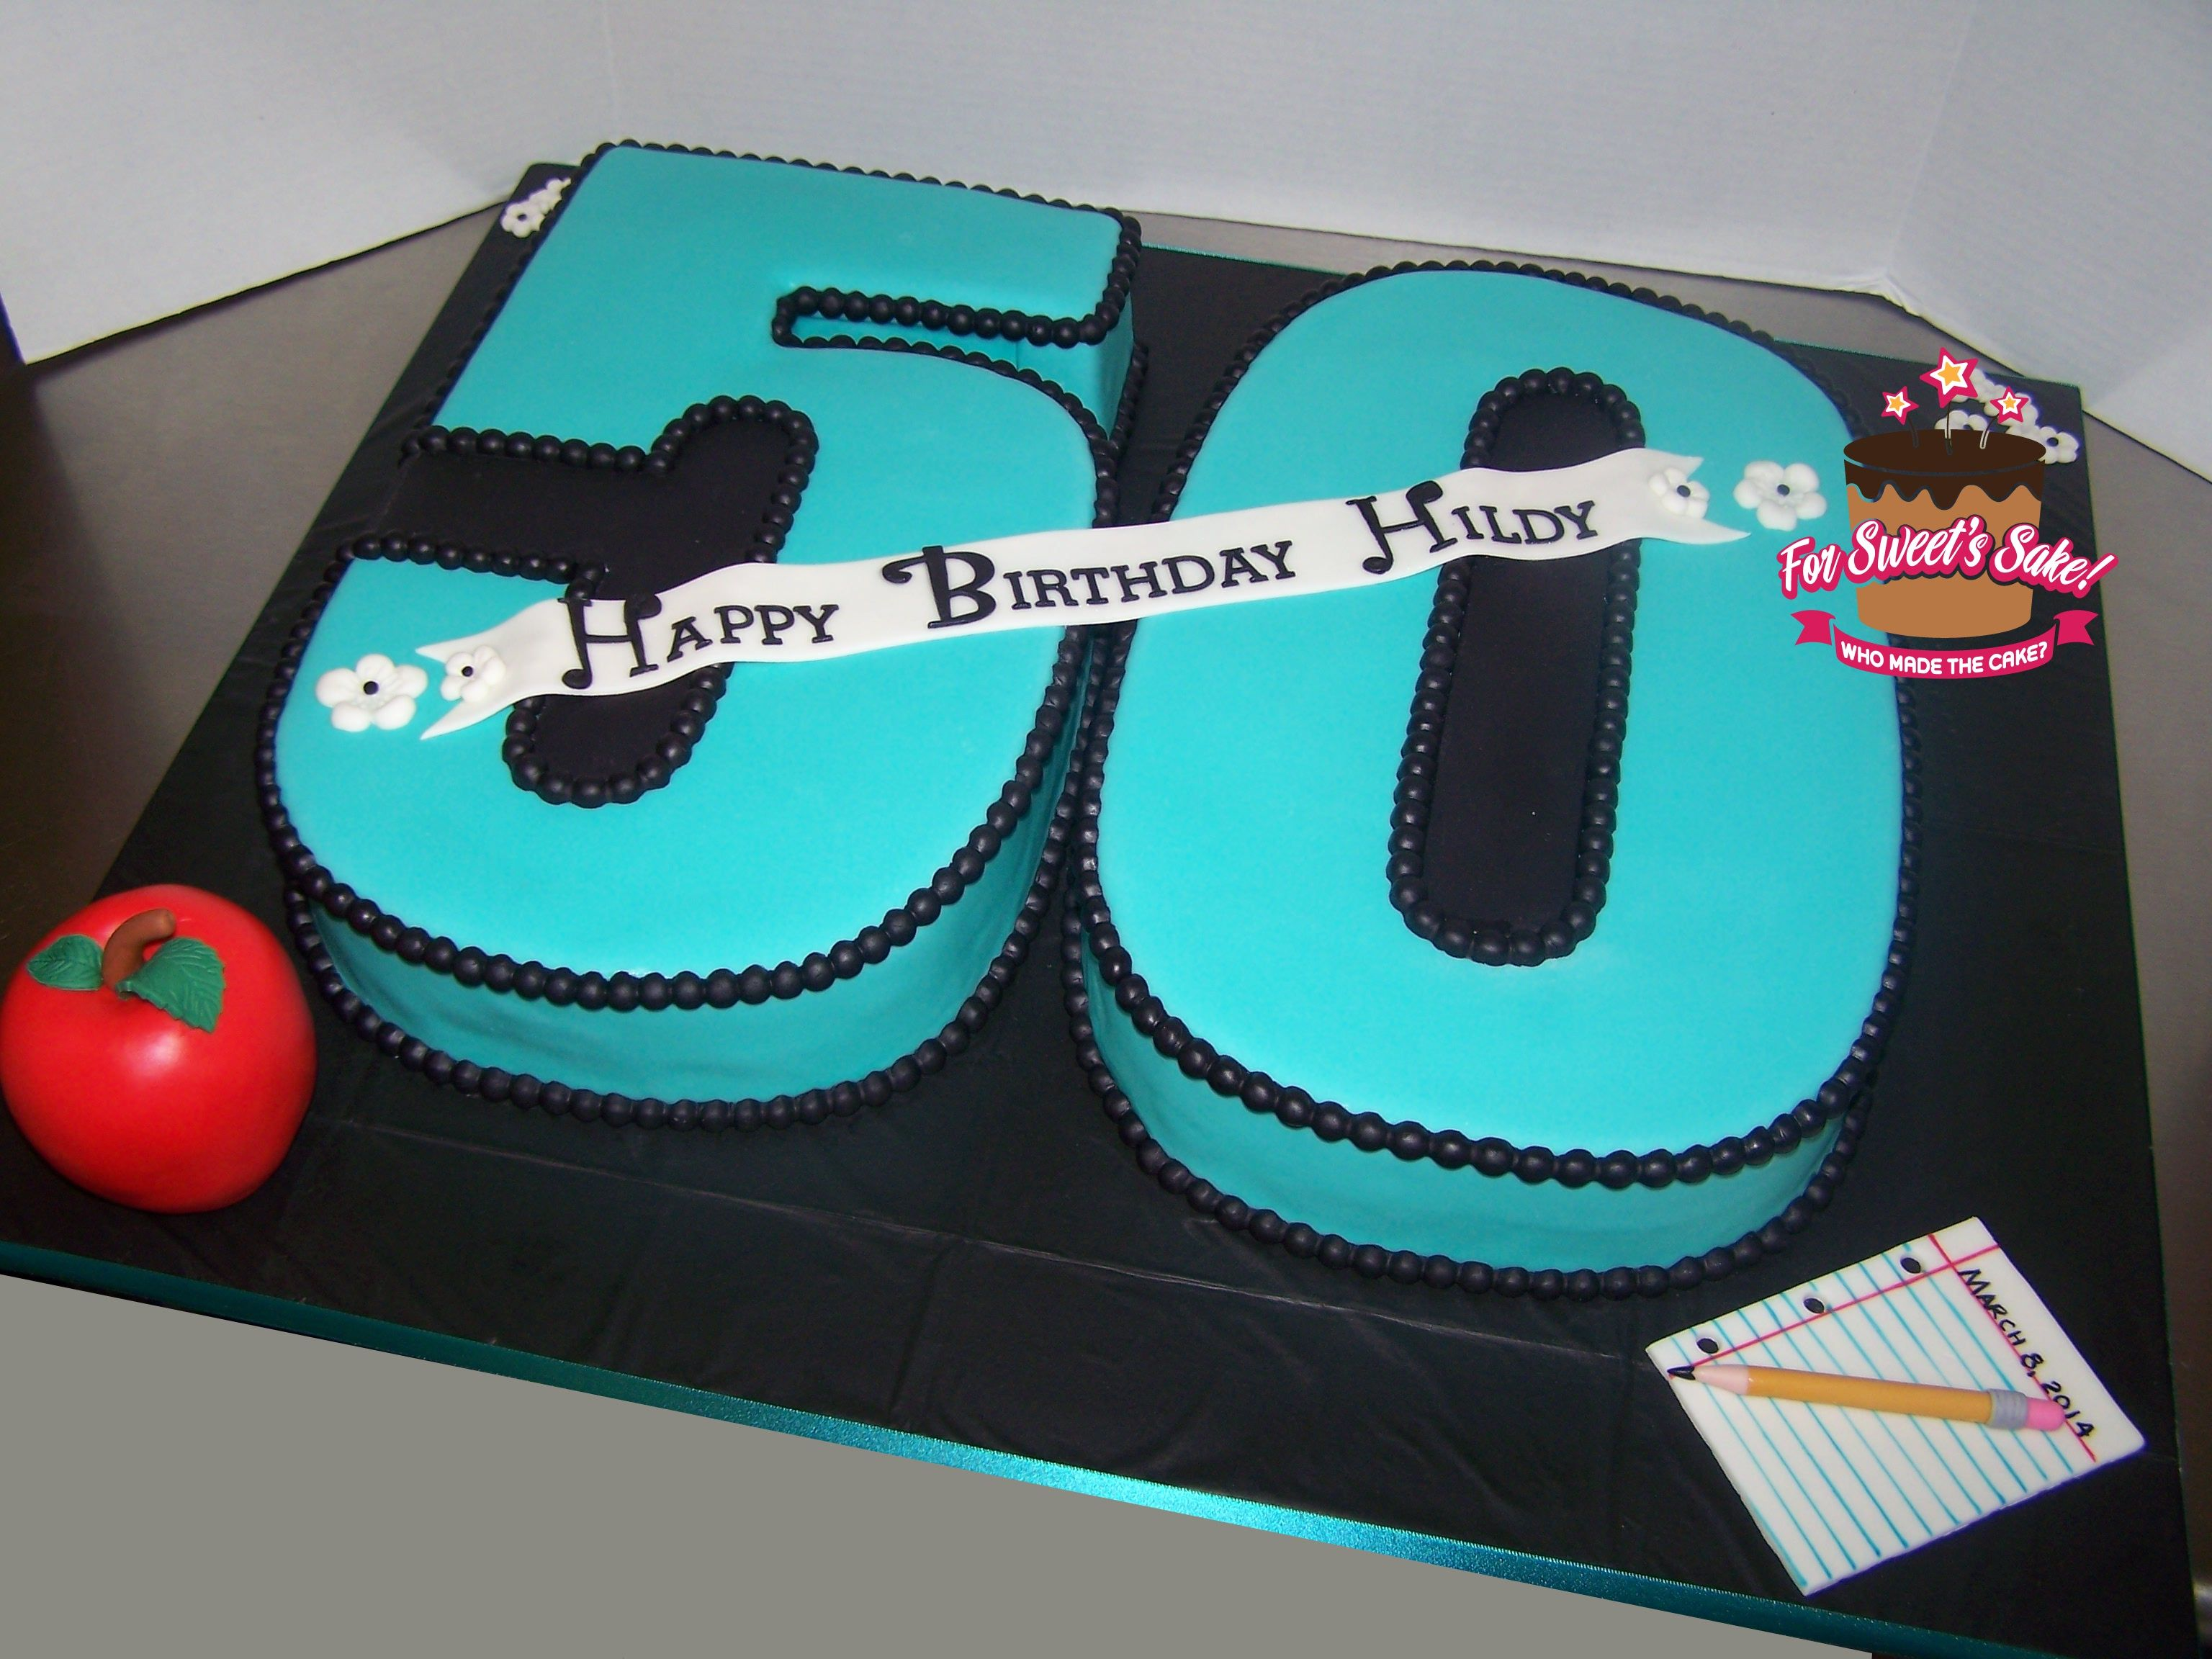 Phenomenal Fiftieth Birthday Cake With Images 50Th Birthday Cake Fifty Personalised Birthday Cards Veneteletsinfo